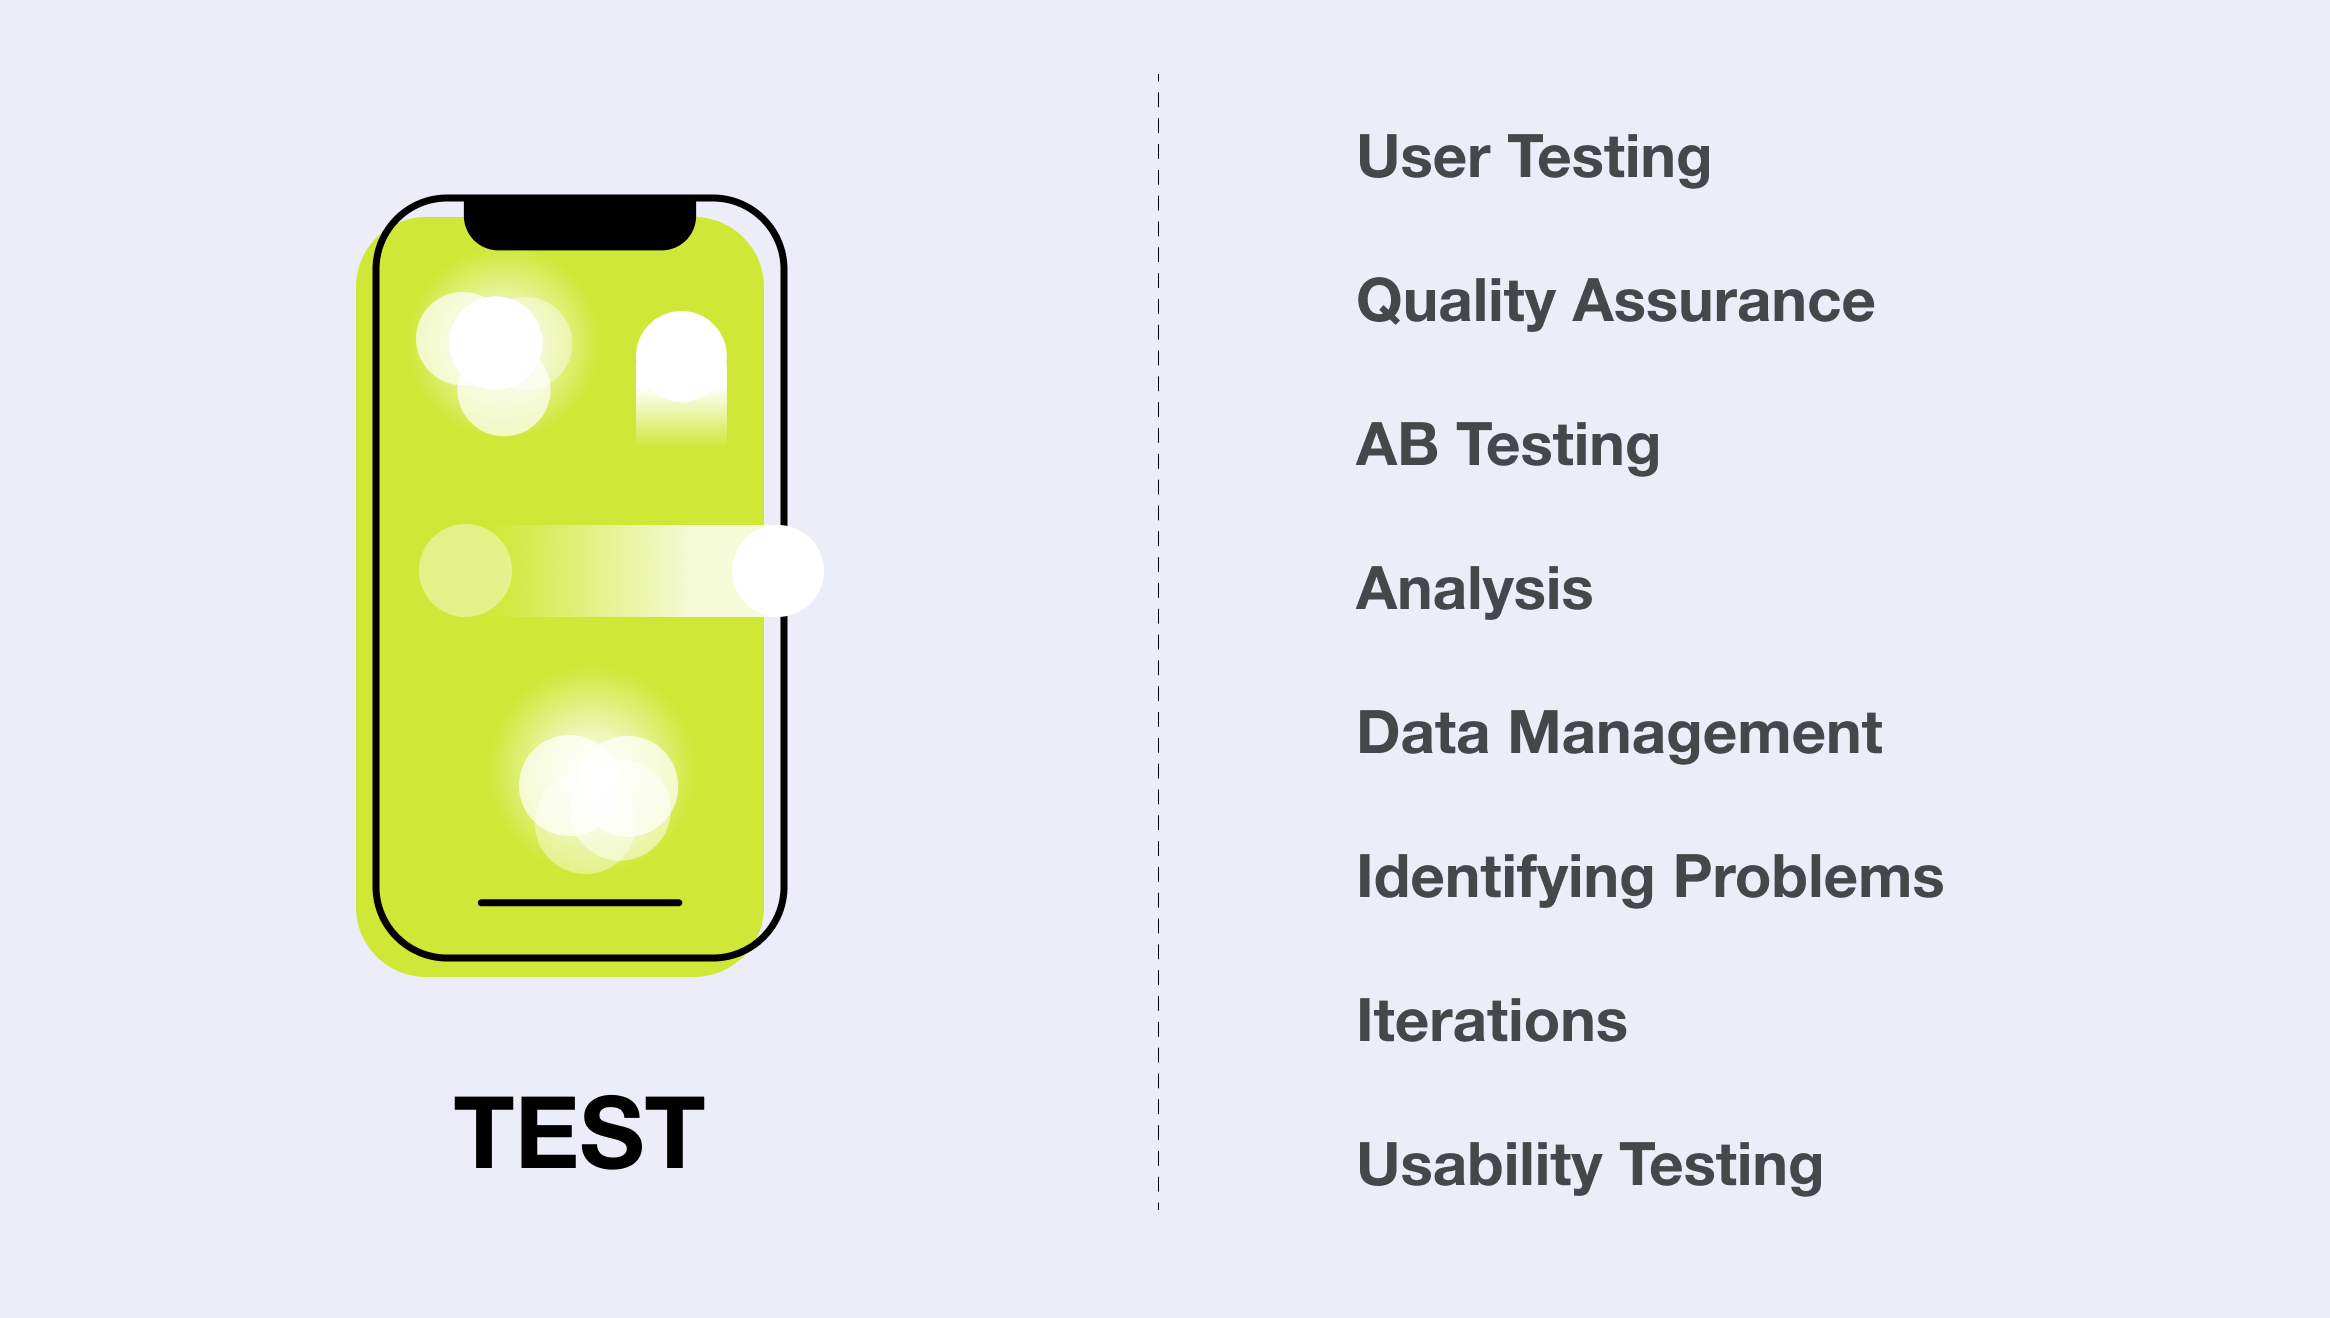 We iterate and test every part of our designs, whether through user testing or our QA team